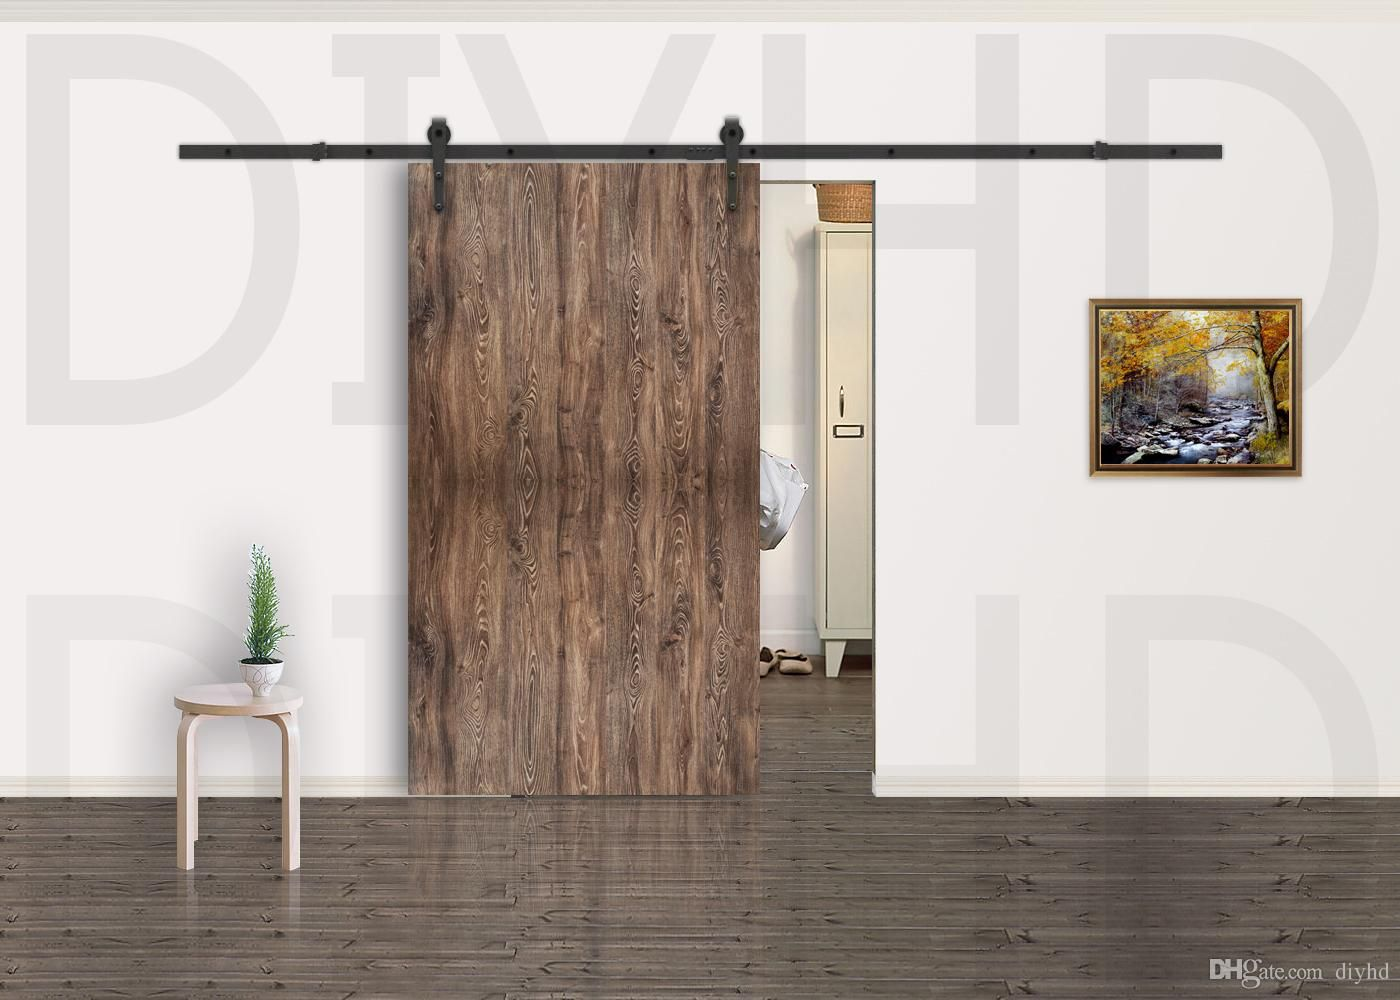 10ft Modern Rustic Black Arrow Wheel Sliding Barn Door Wood Door Hardware Interior Slidin Barn Door Hardware Interior Sliding Barn Doors Door Hardware Interior